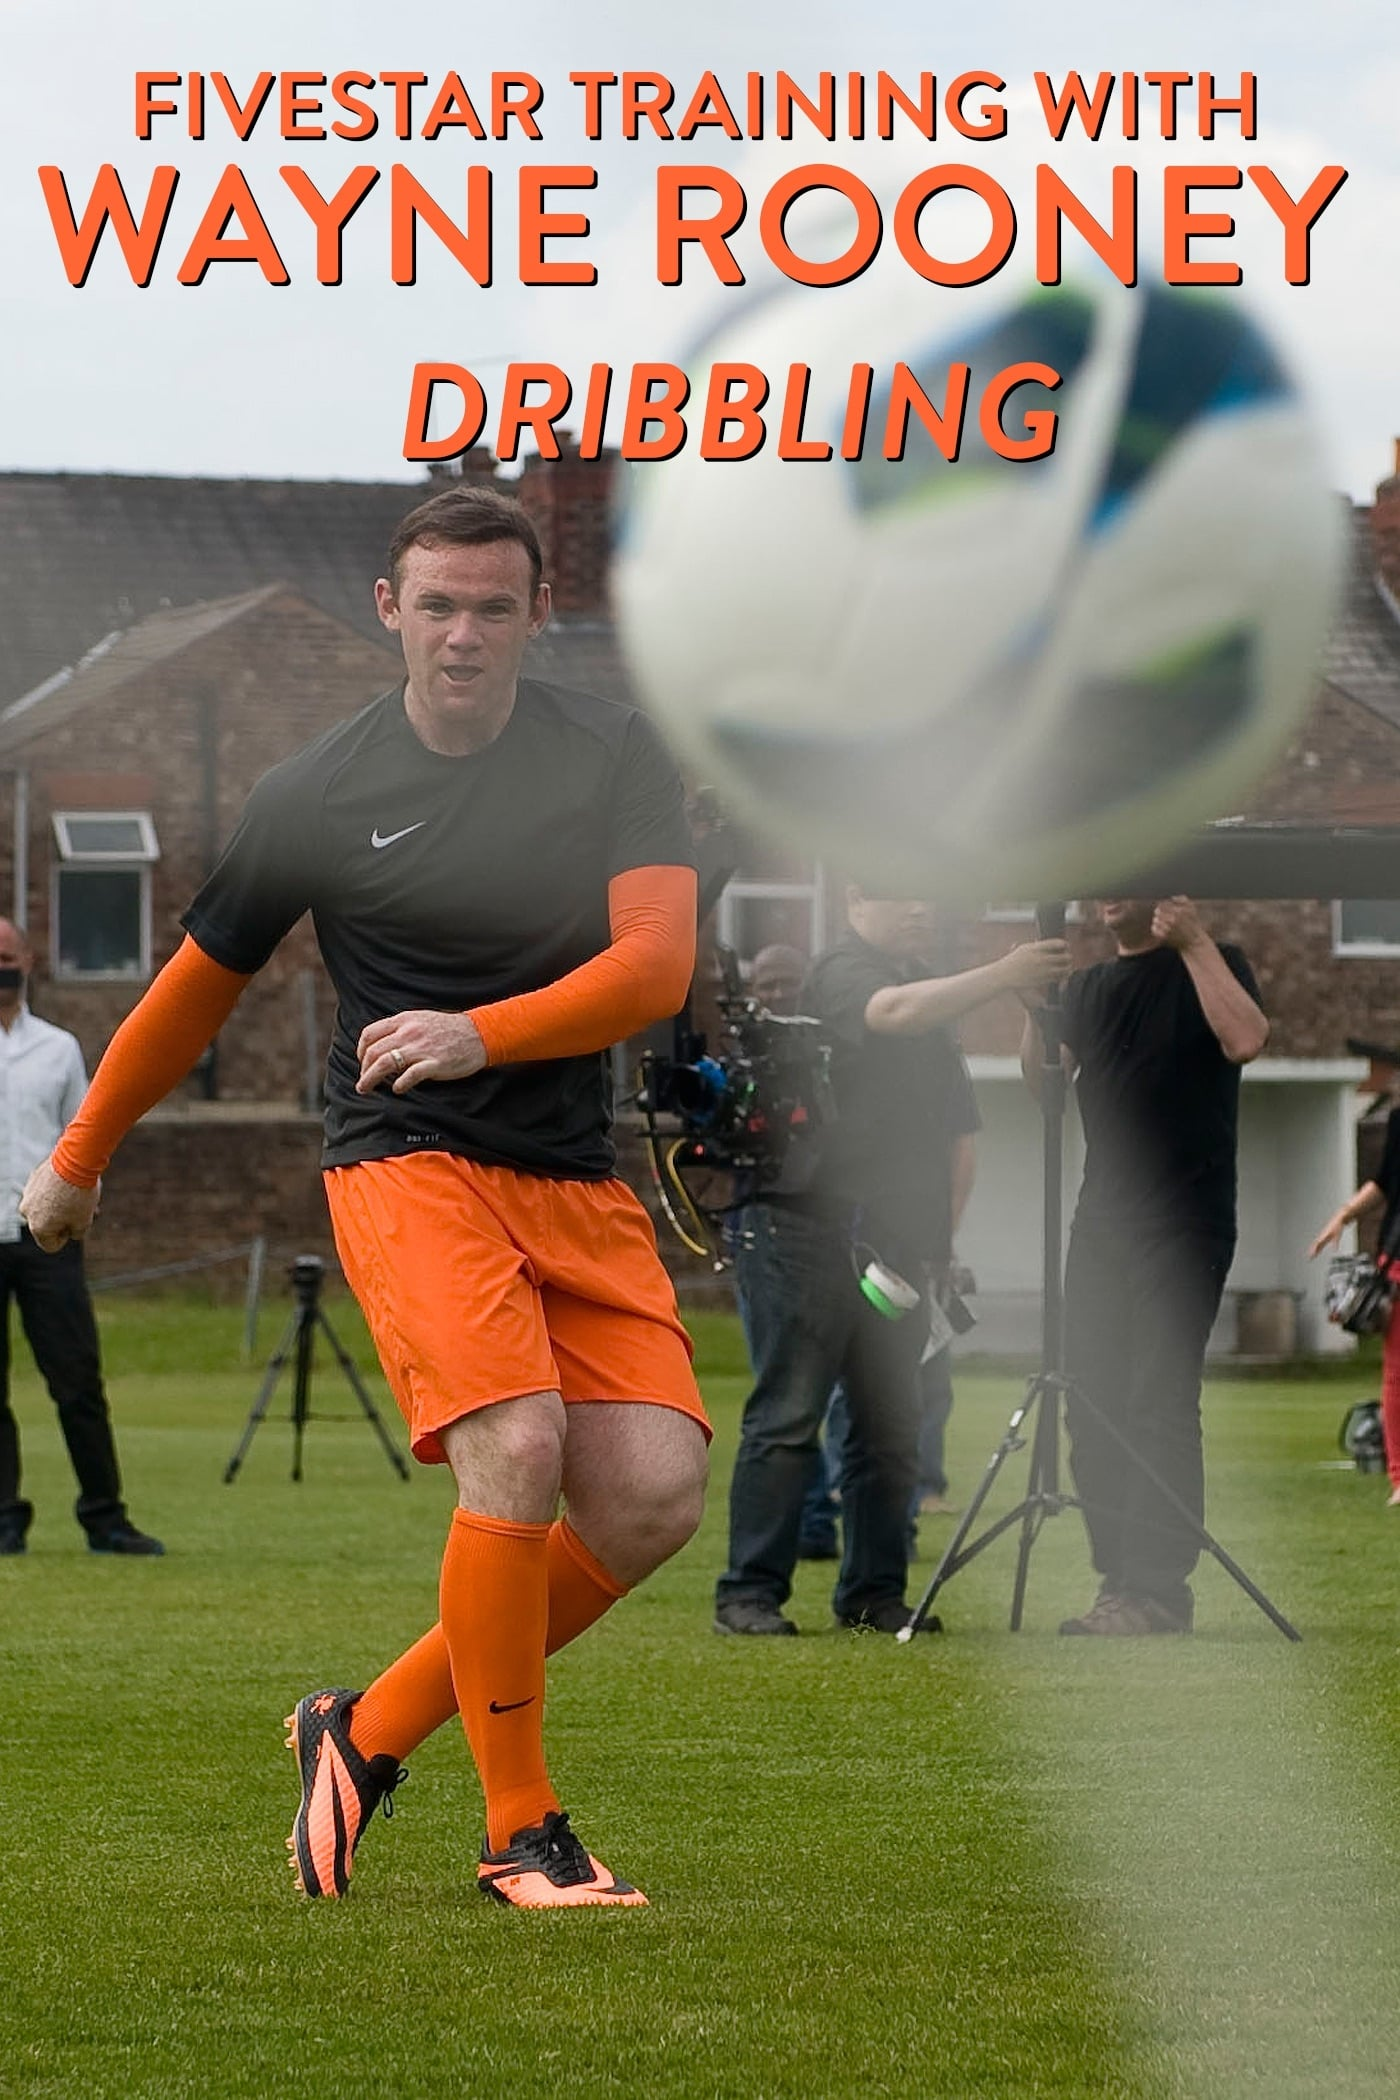 Fivestar Training with Wayne Rooney: Dribbling on FREECABLE TV